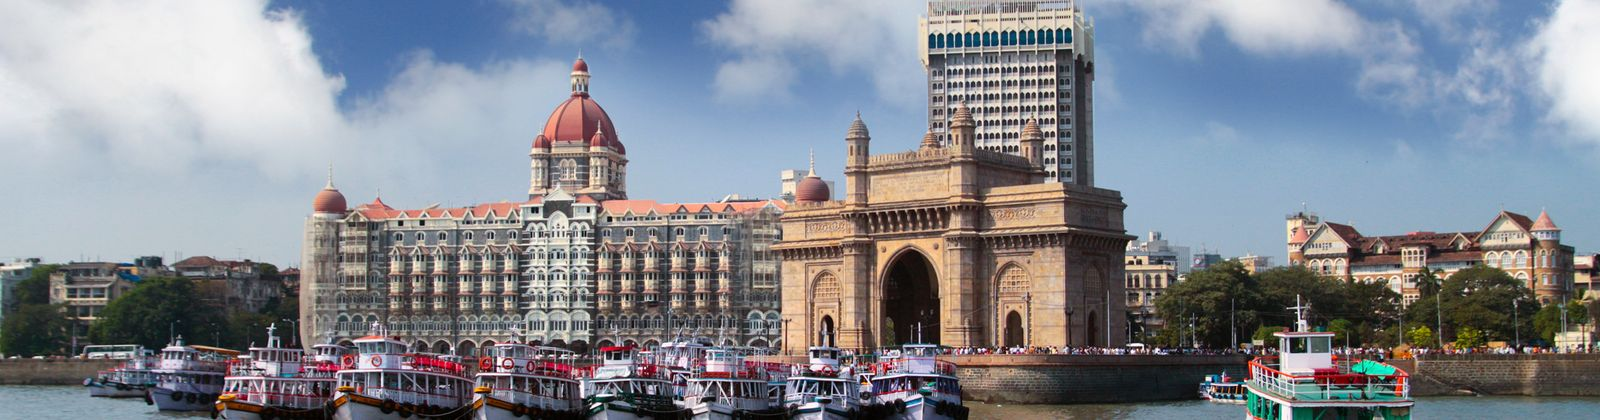 Mumbai guide: When to go and what to do in India's biggest city